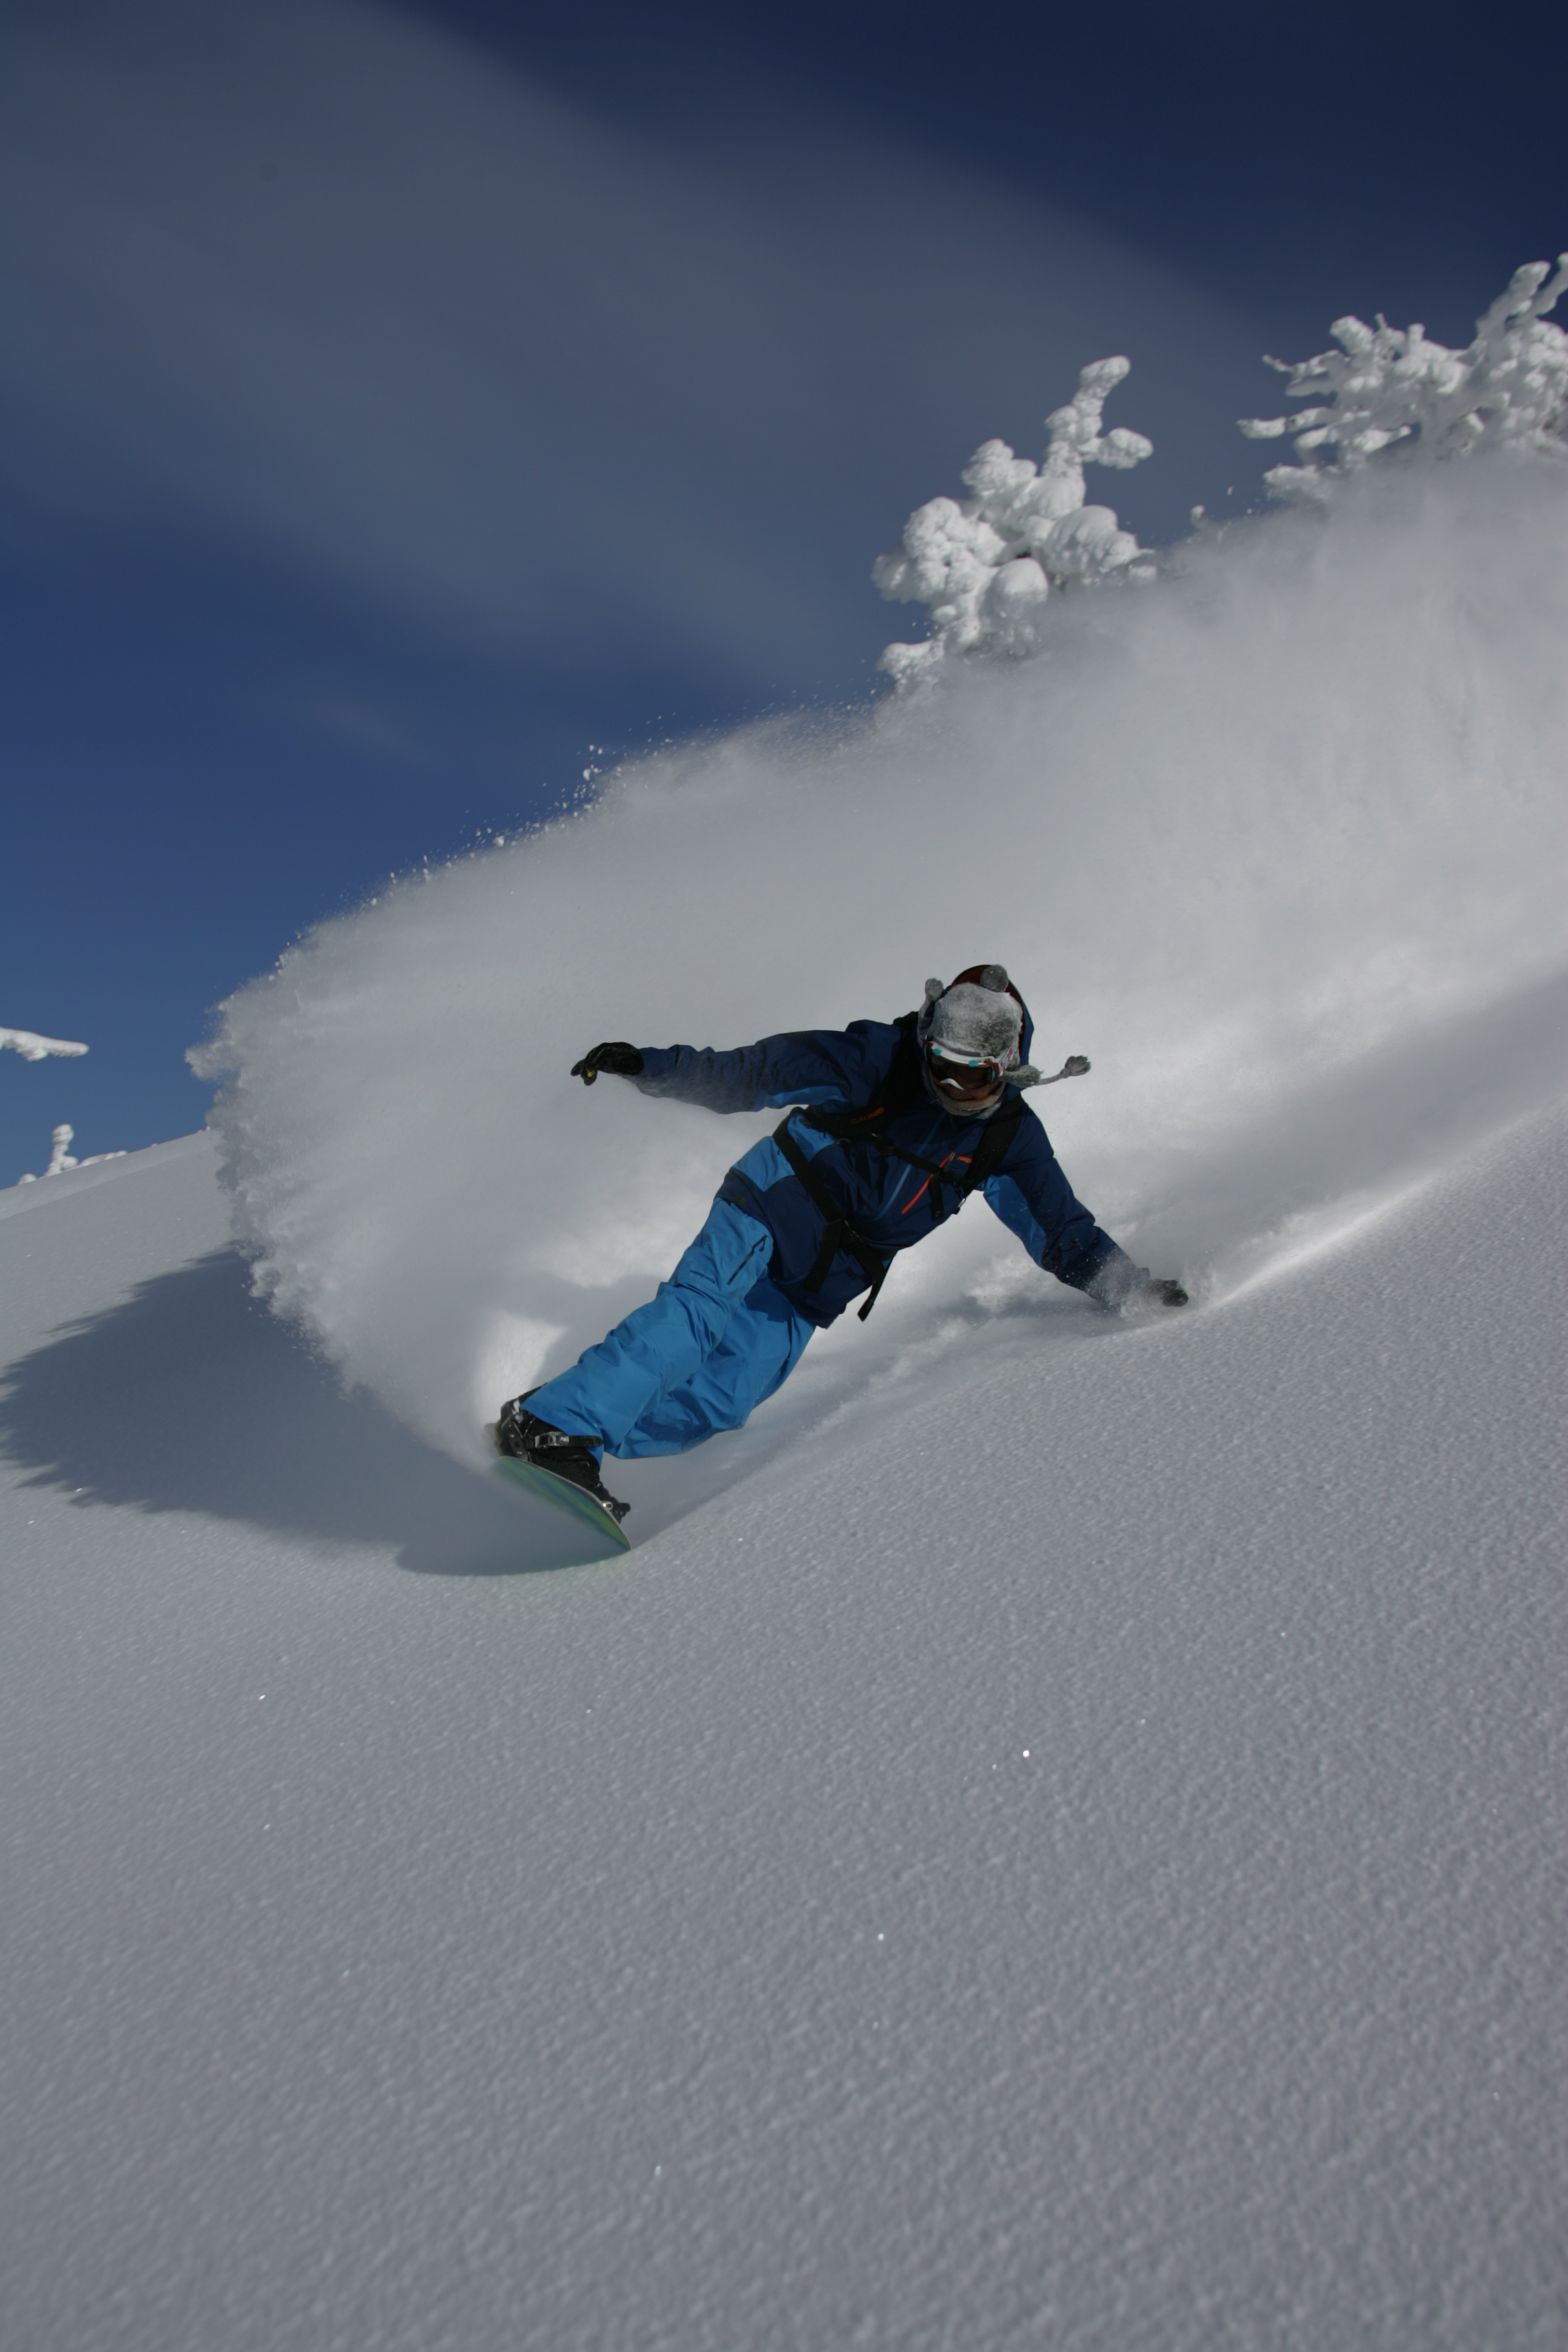 Gerry Lopez laying down a deep carve not unlike surfing at Mt. Bachelor. Photo: Kirk Devoll